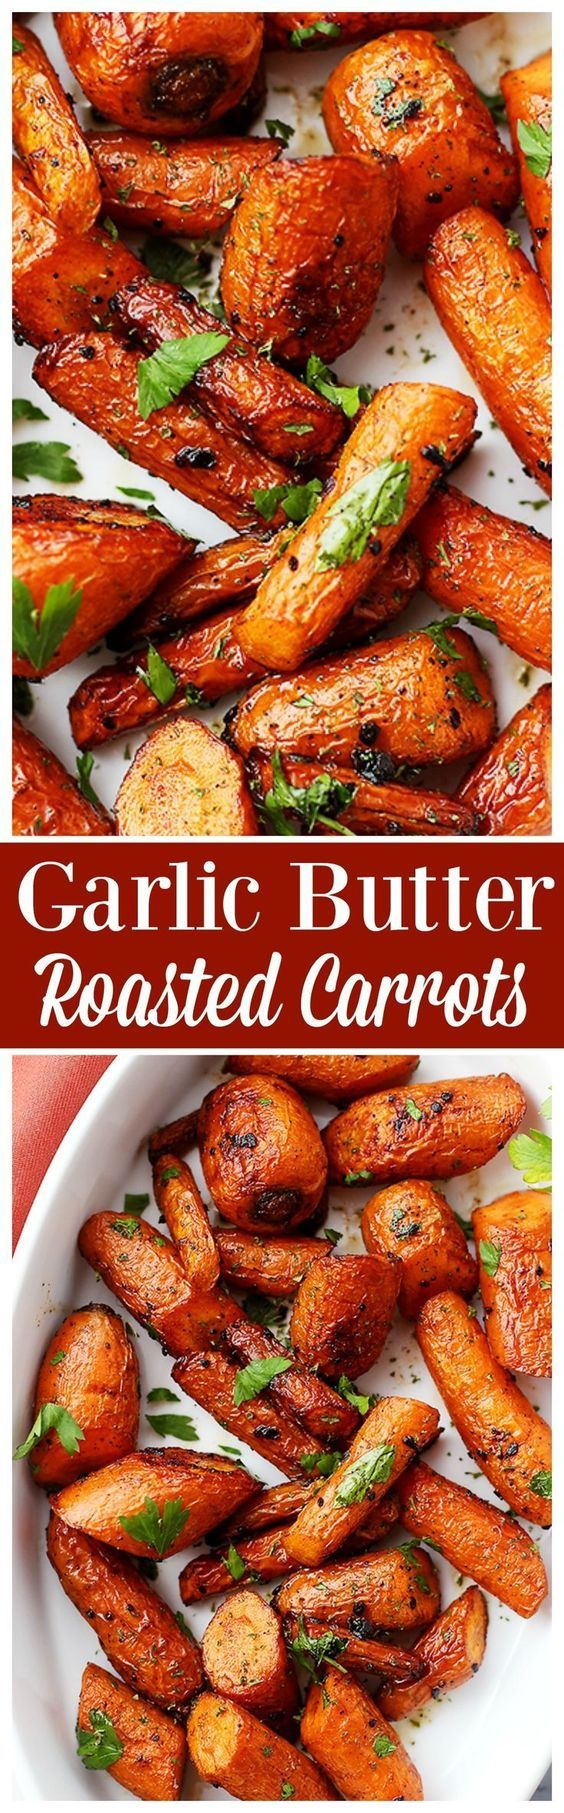 Garlic Butter Roasted Carrots Vegetable Side Dish Recipe via Diethood - Ridiculously easy, yet tender and SO incredibly delicious roasted carrots with garlic butter.